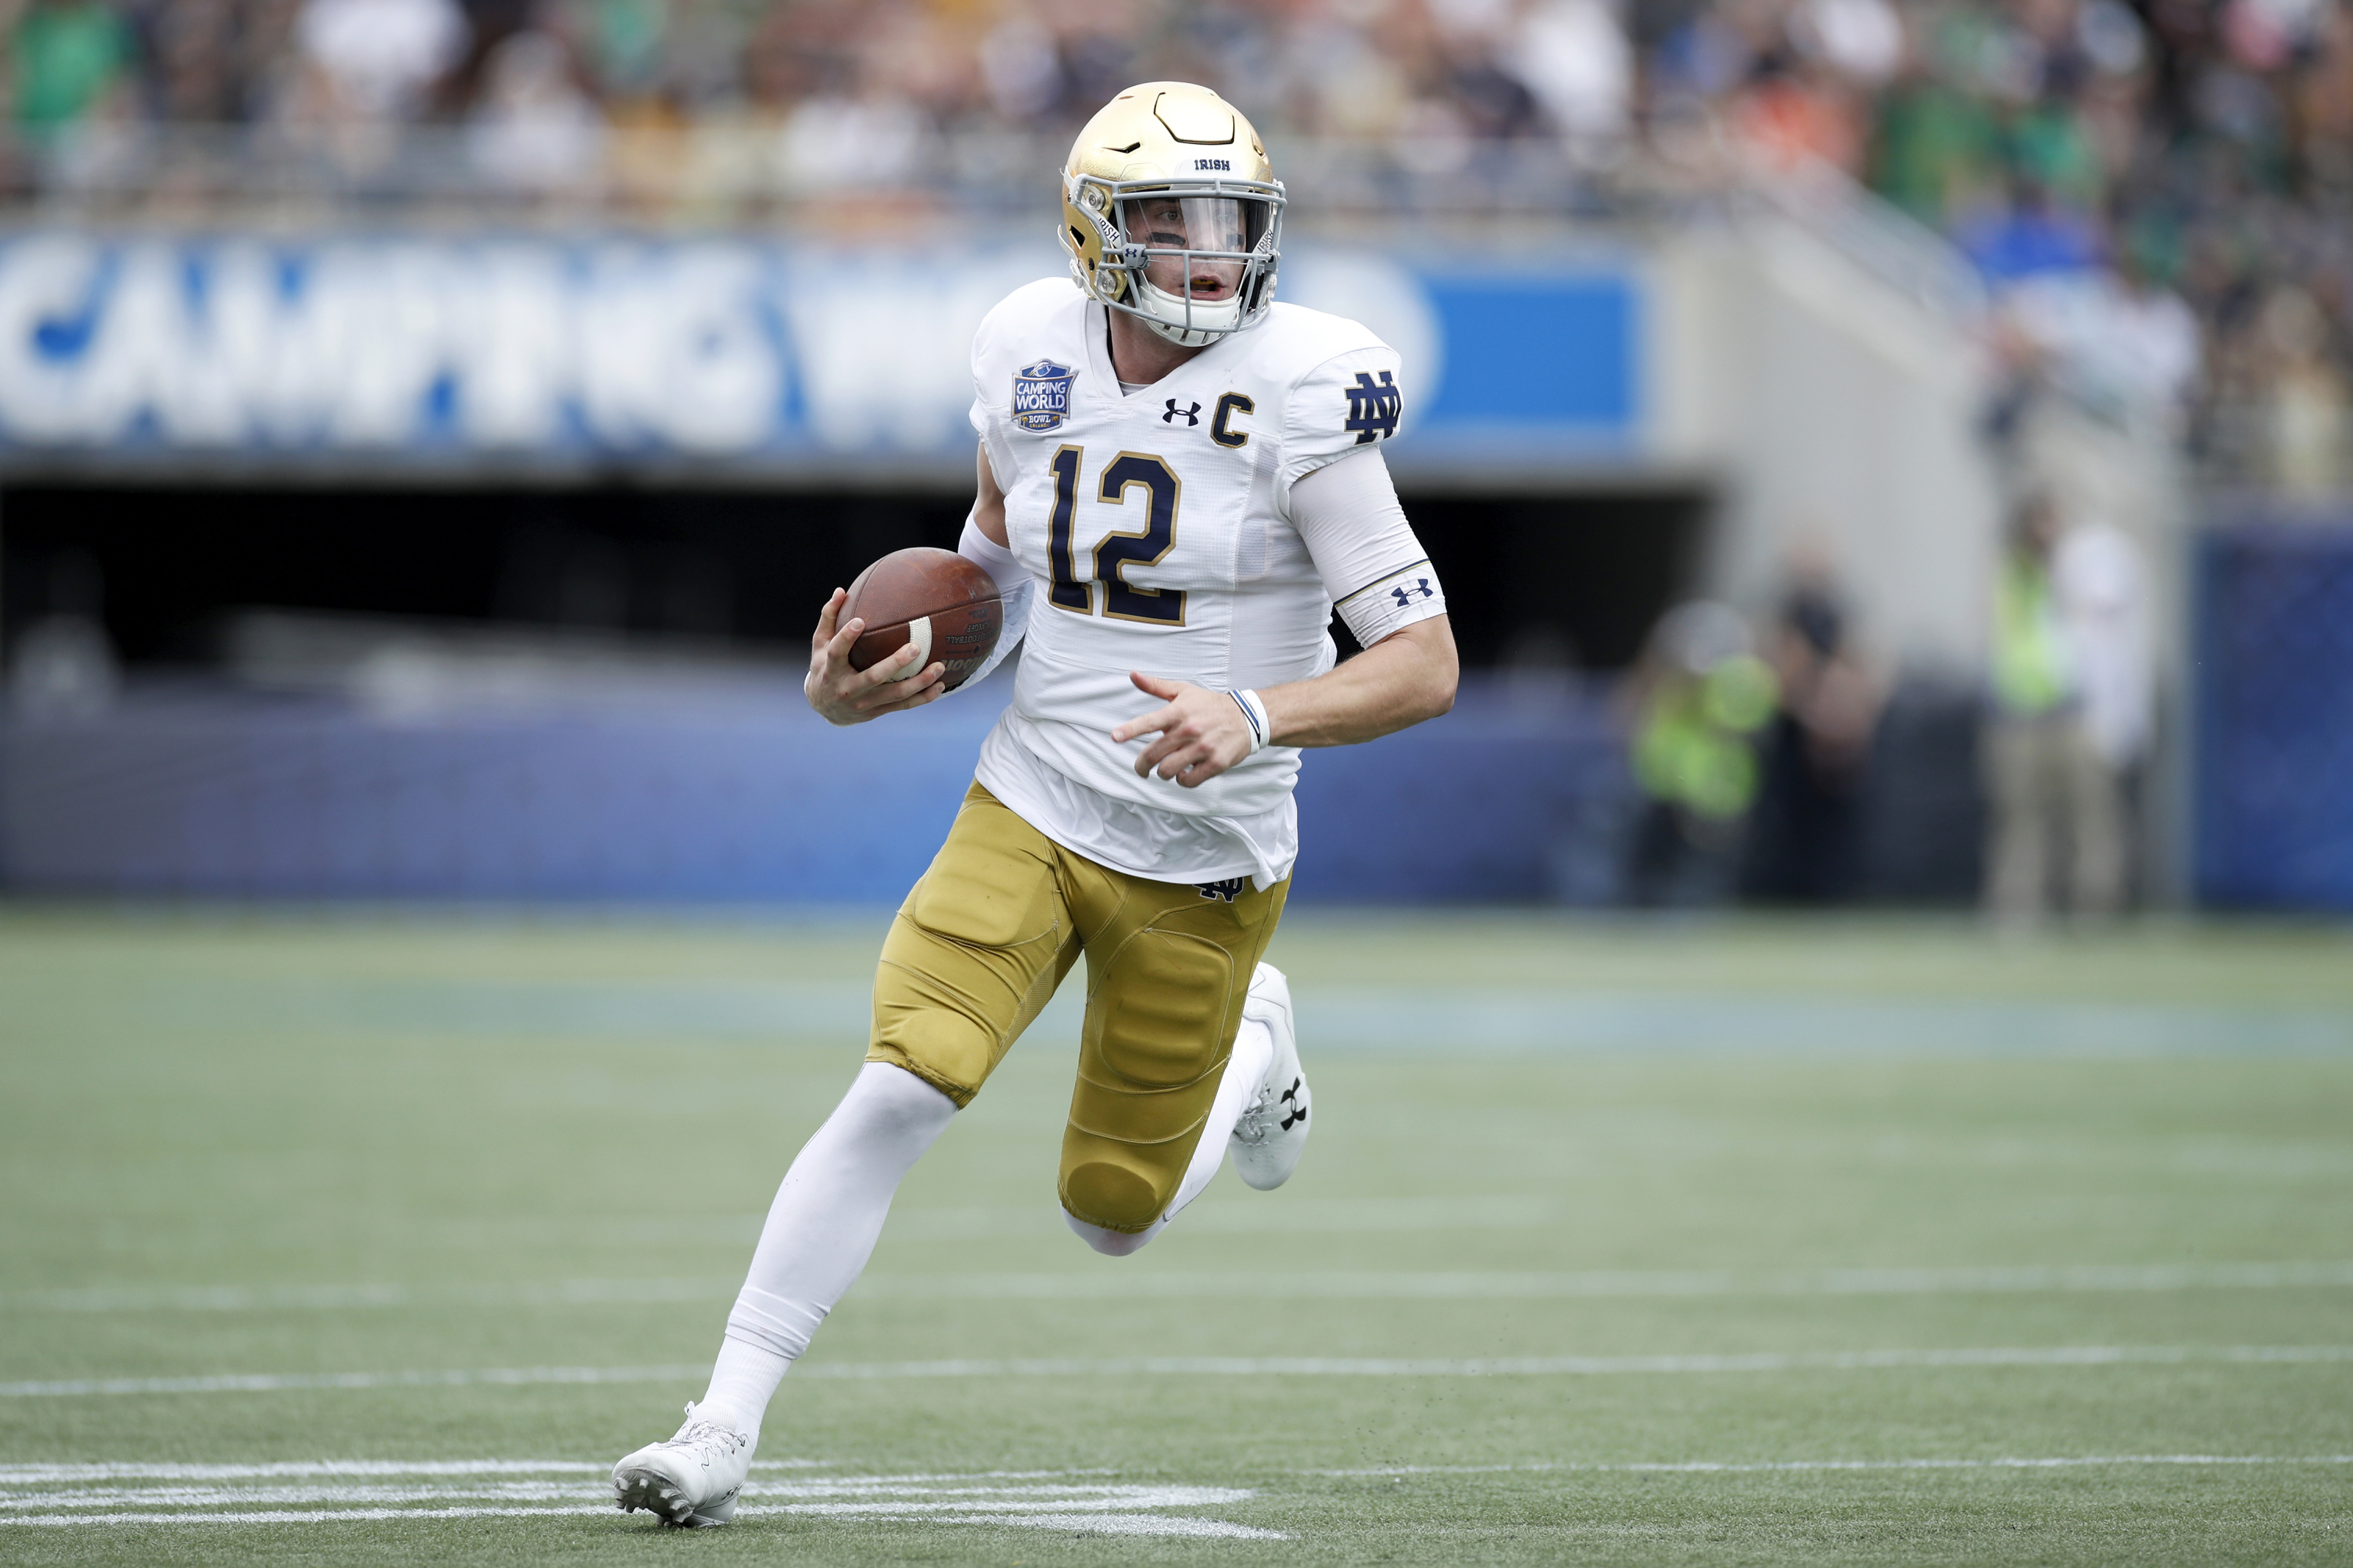 Notre Dame Football Top 3 Irish Prospects For 2021 Nfl Draft